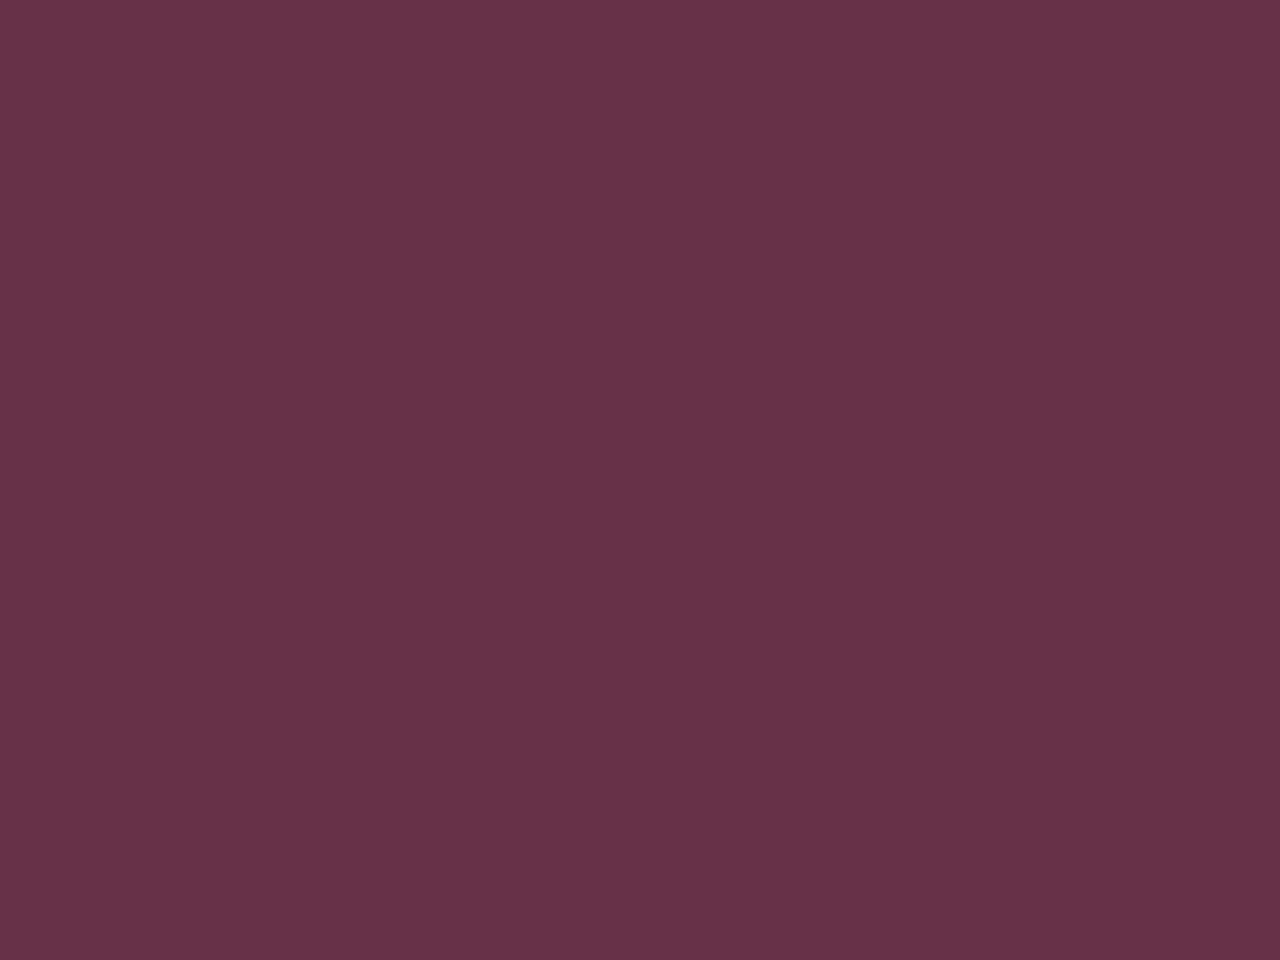 1280x960 Wine Dregs Solid Color Background